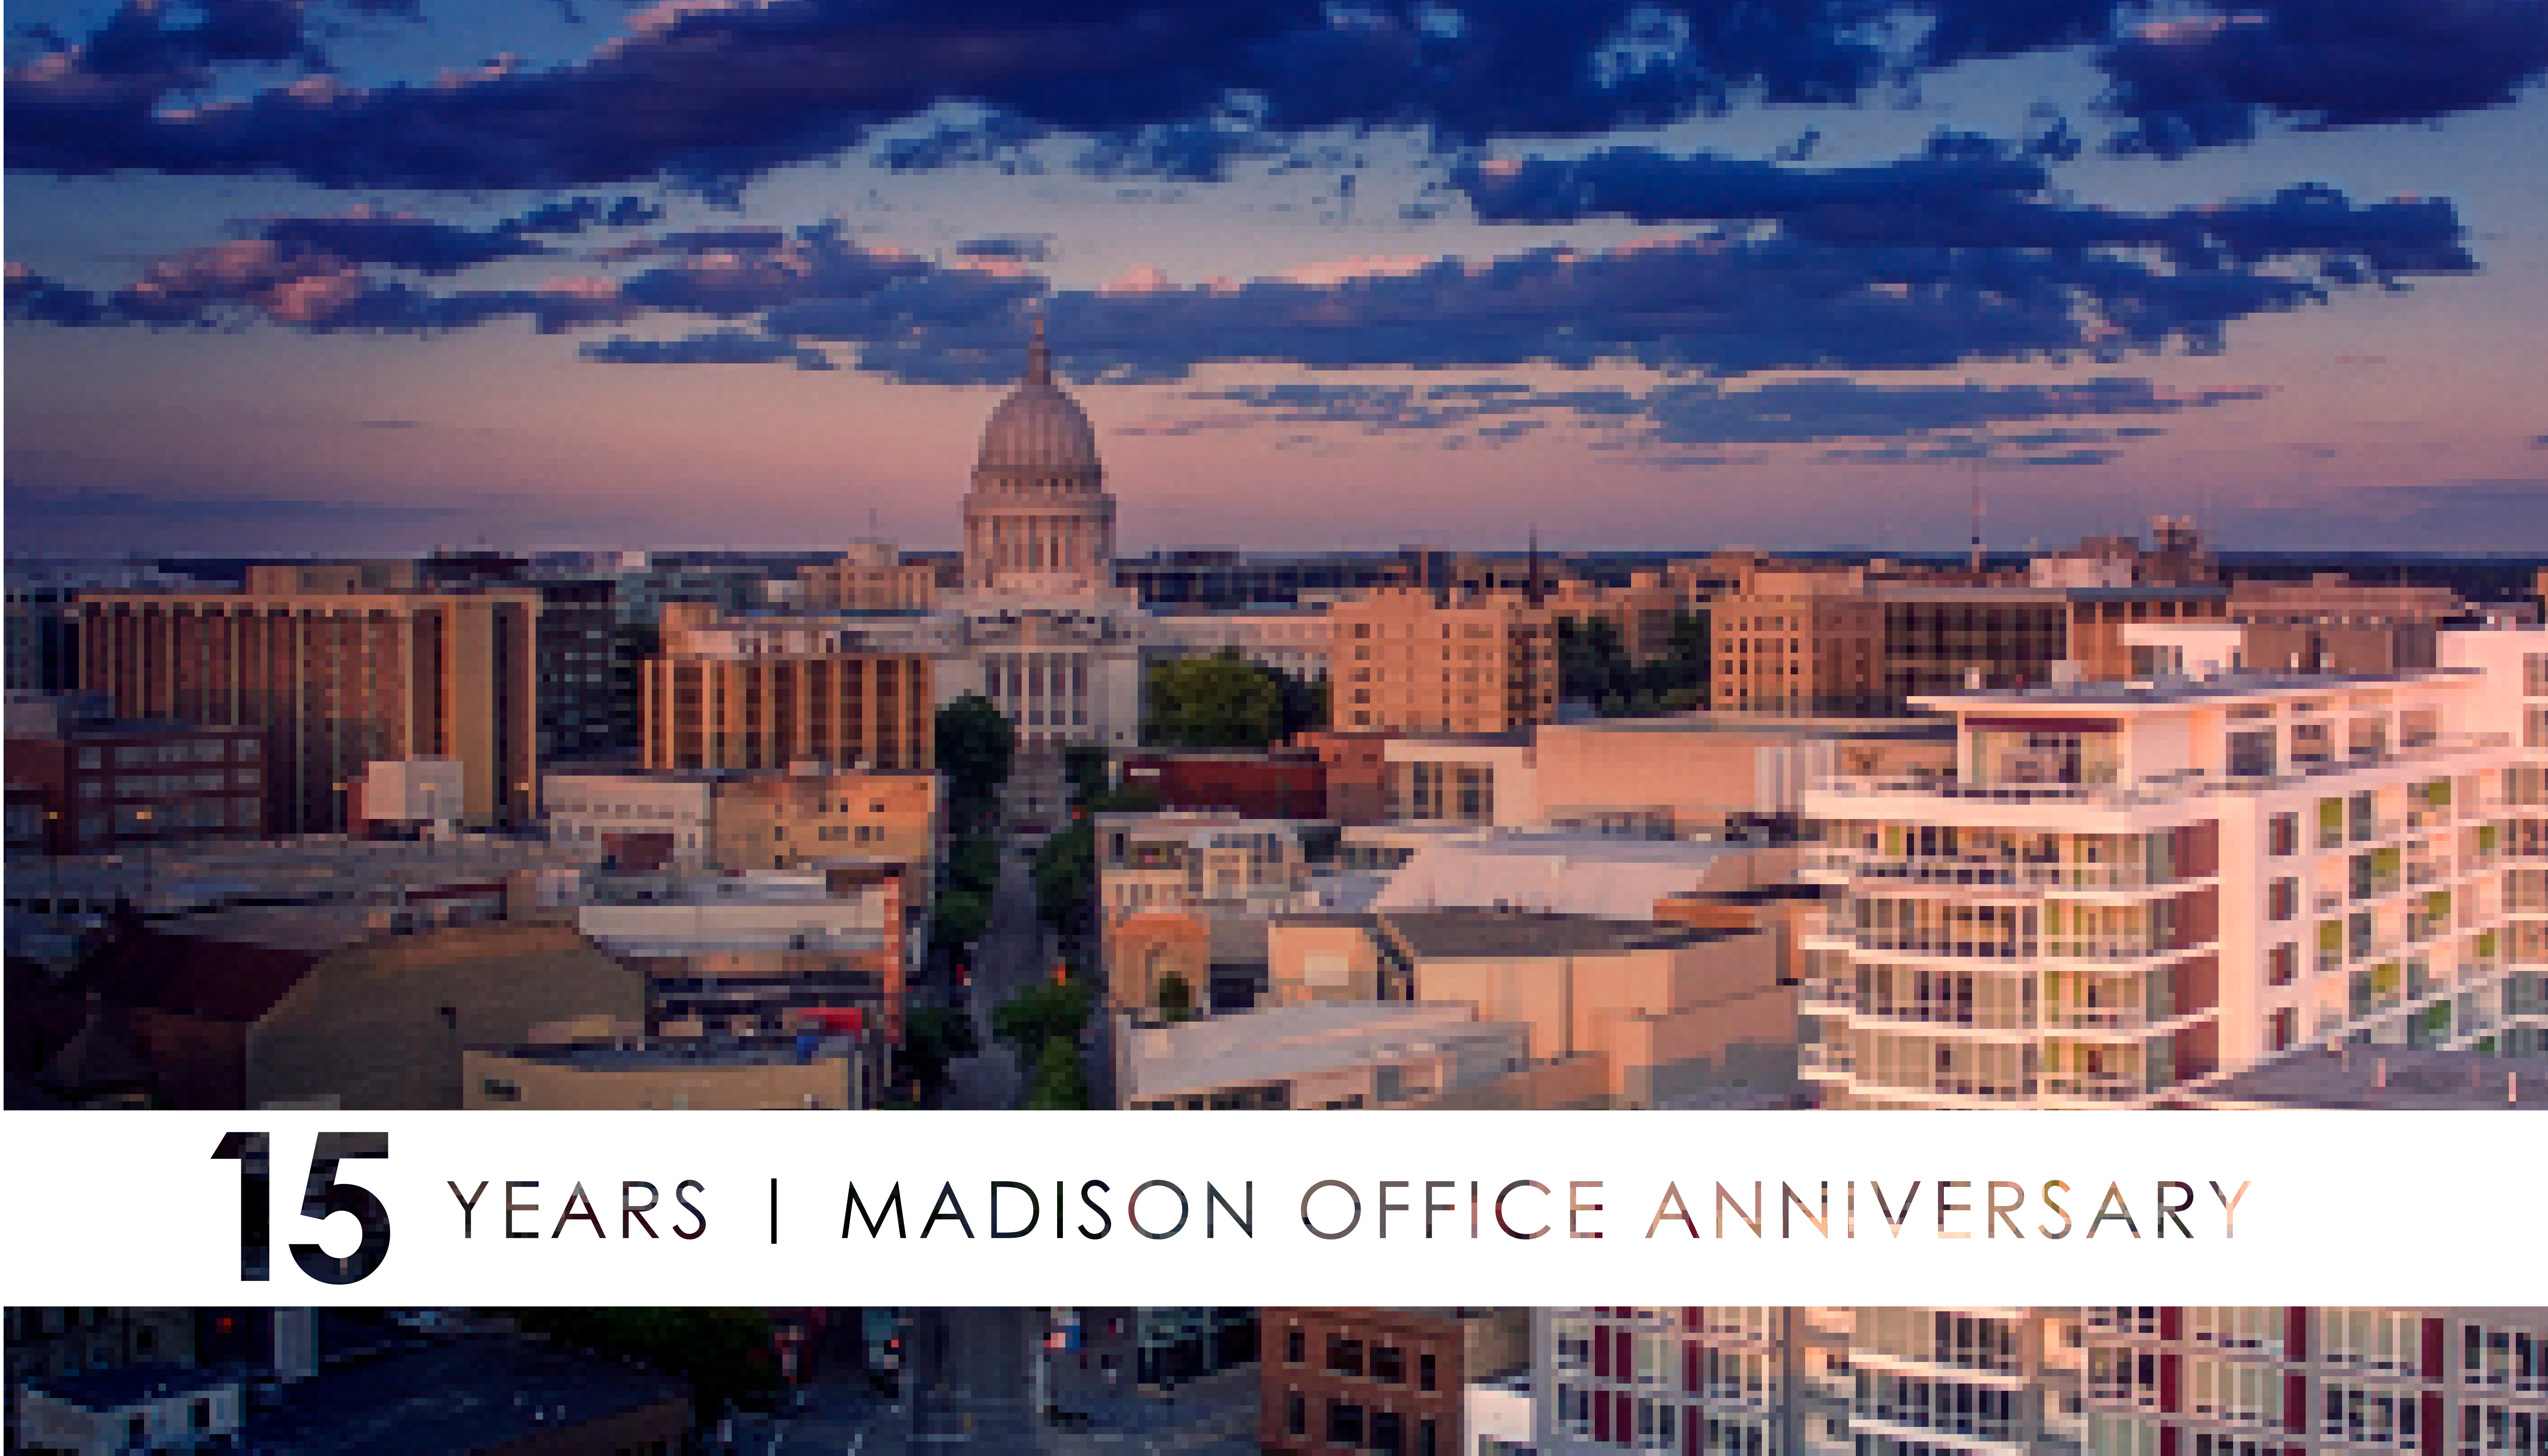 Eppstein Uhen Architects Celebrates Making an Impact in Madison for 15 Years Image